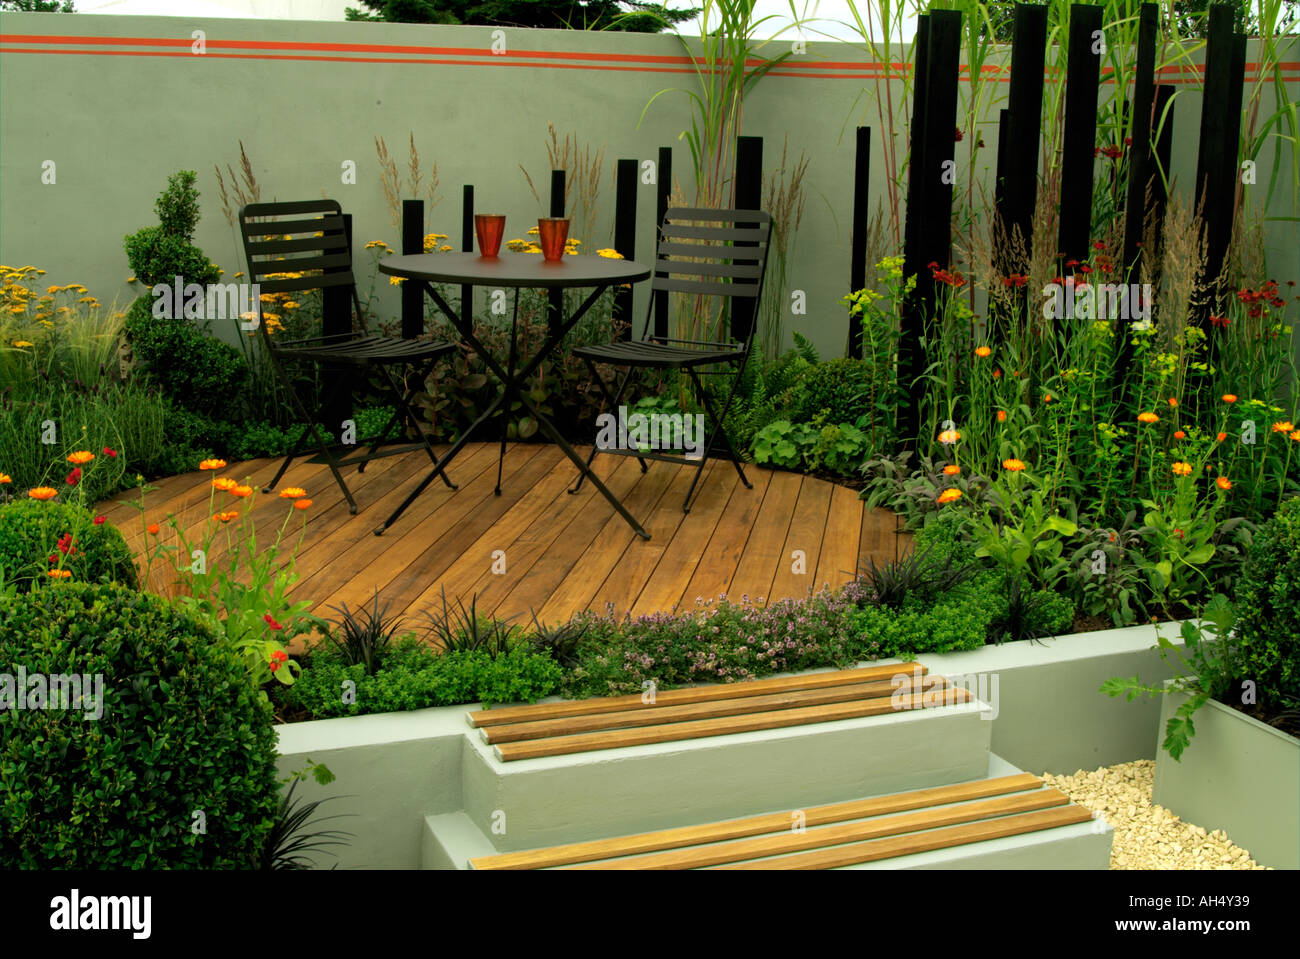 Garden Seating On Wooden Decking Overlooking Wildlife Pond